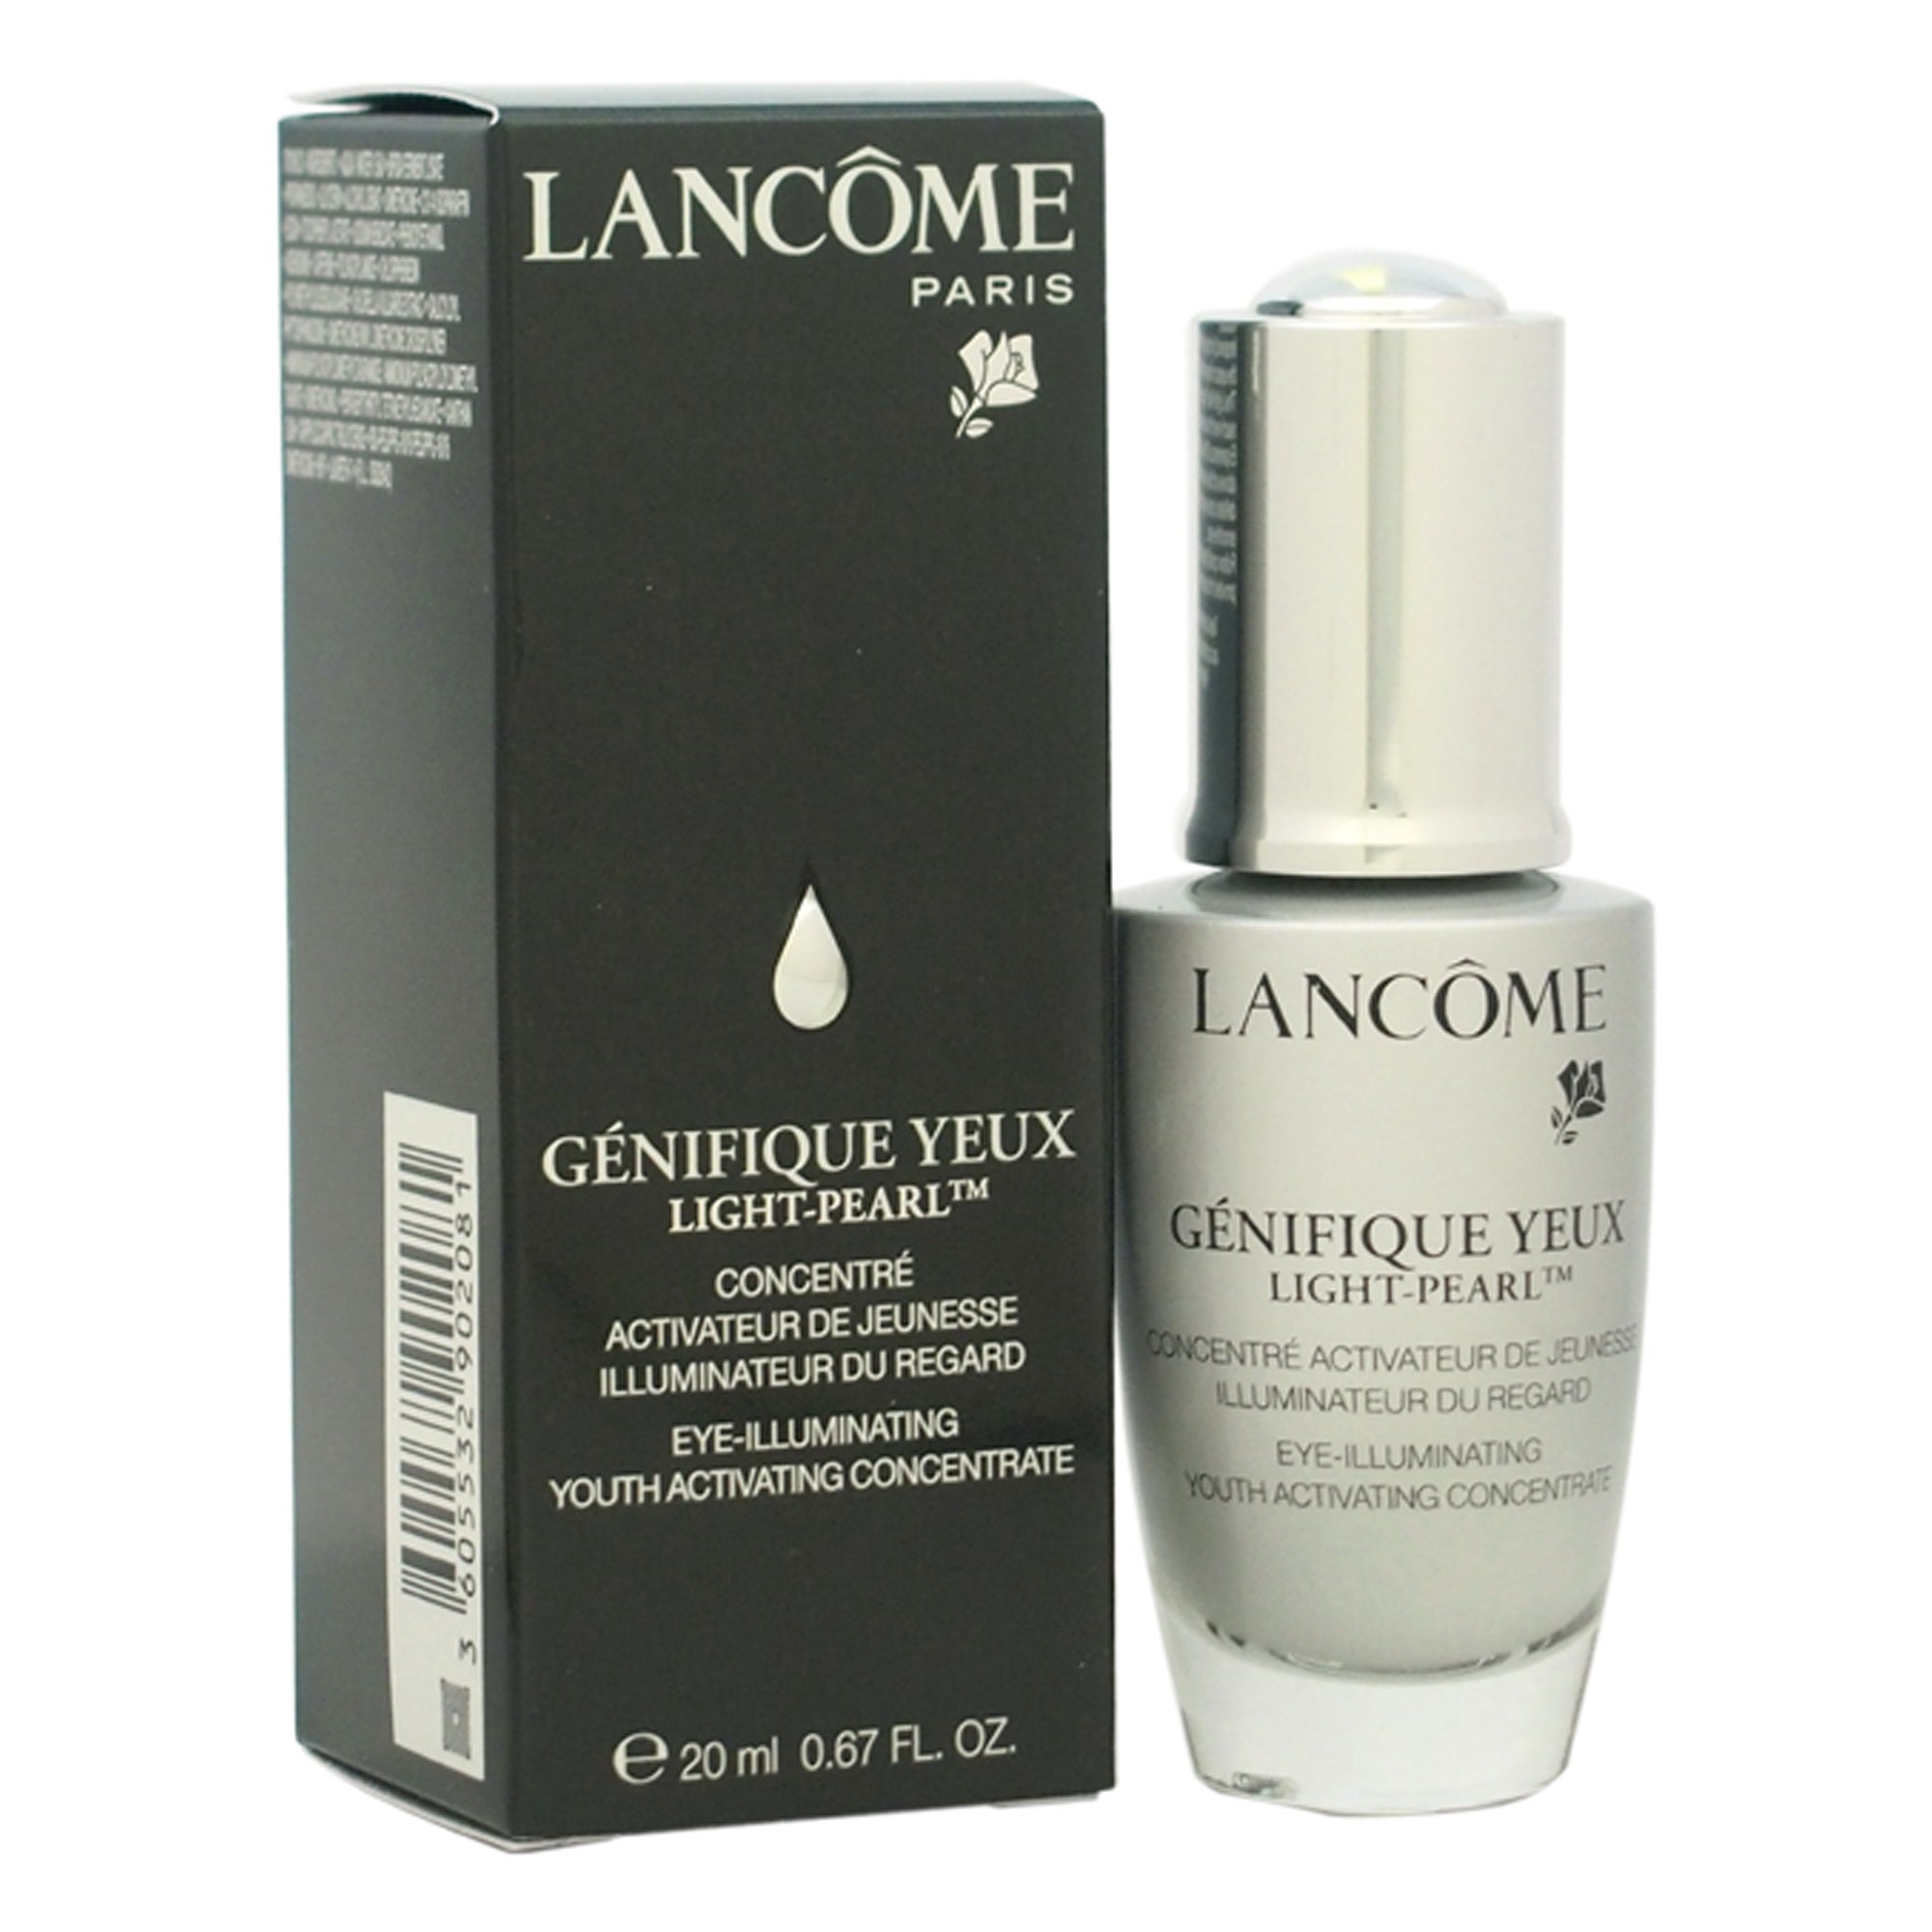 Lancome Genifique Yeux Light Pearl Eye Illuminating Youth Activating Concentrate